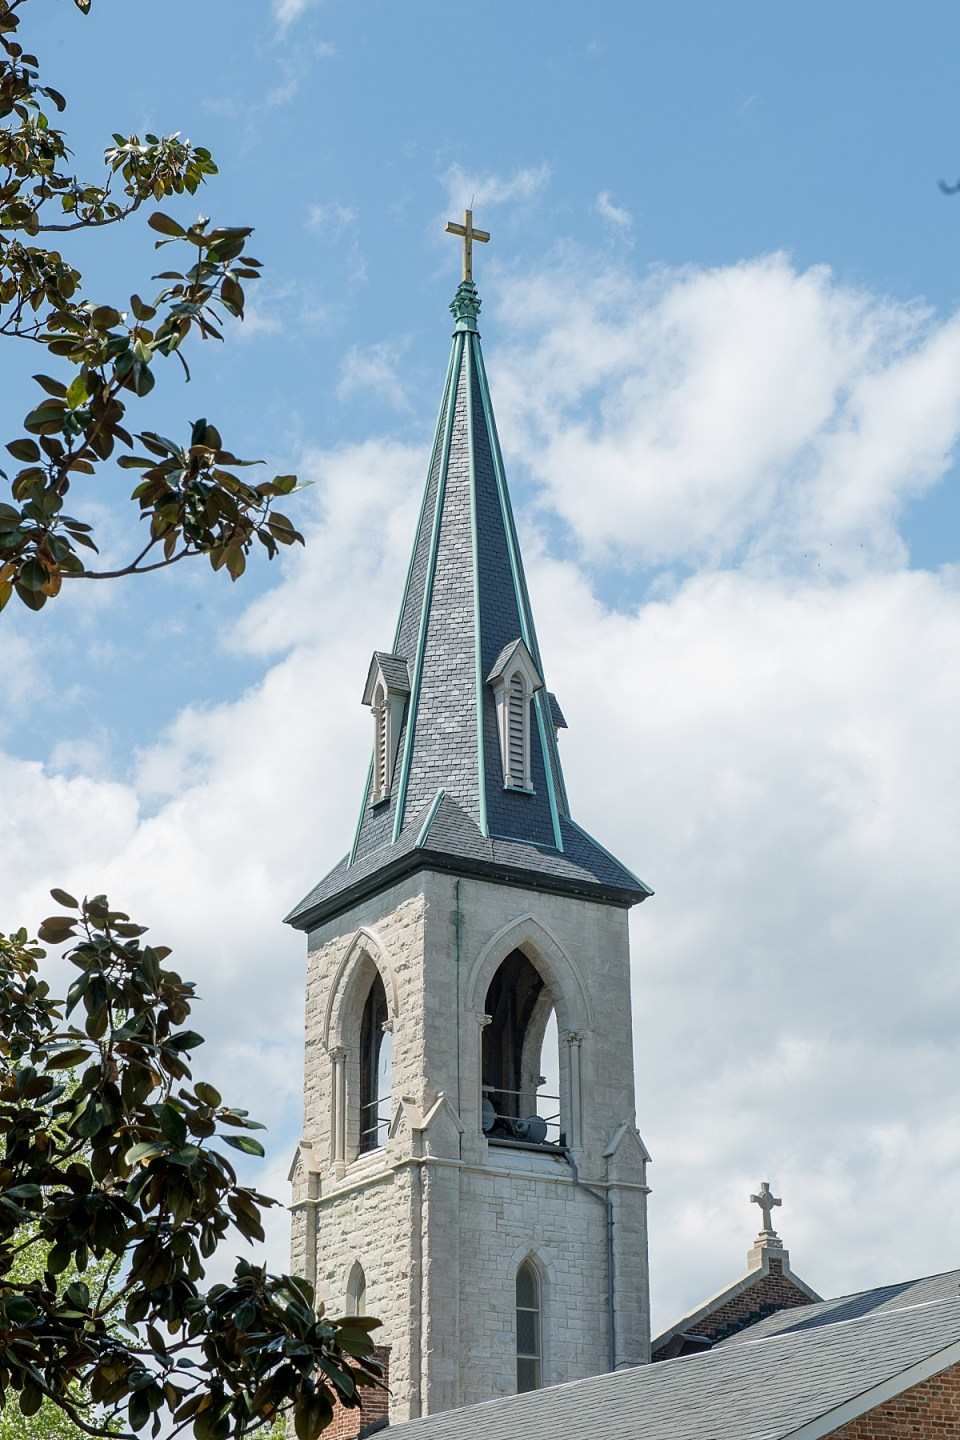 St. Mary's Bascilica in Old Town Alexandria by Erin Tetterton Photography